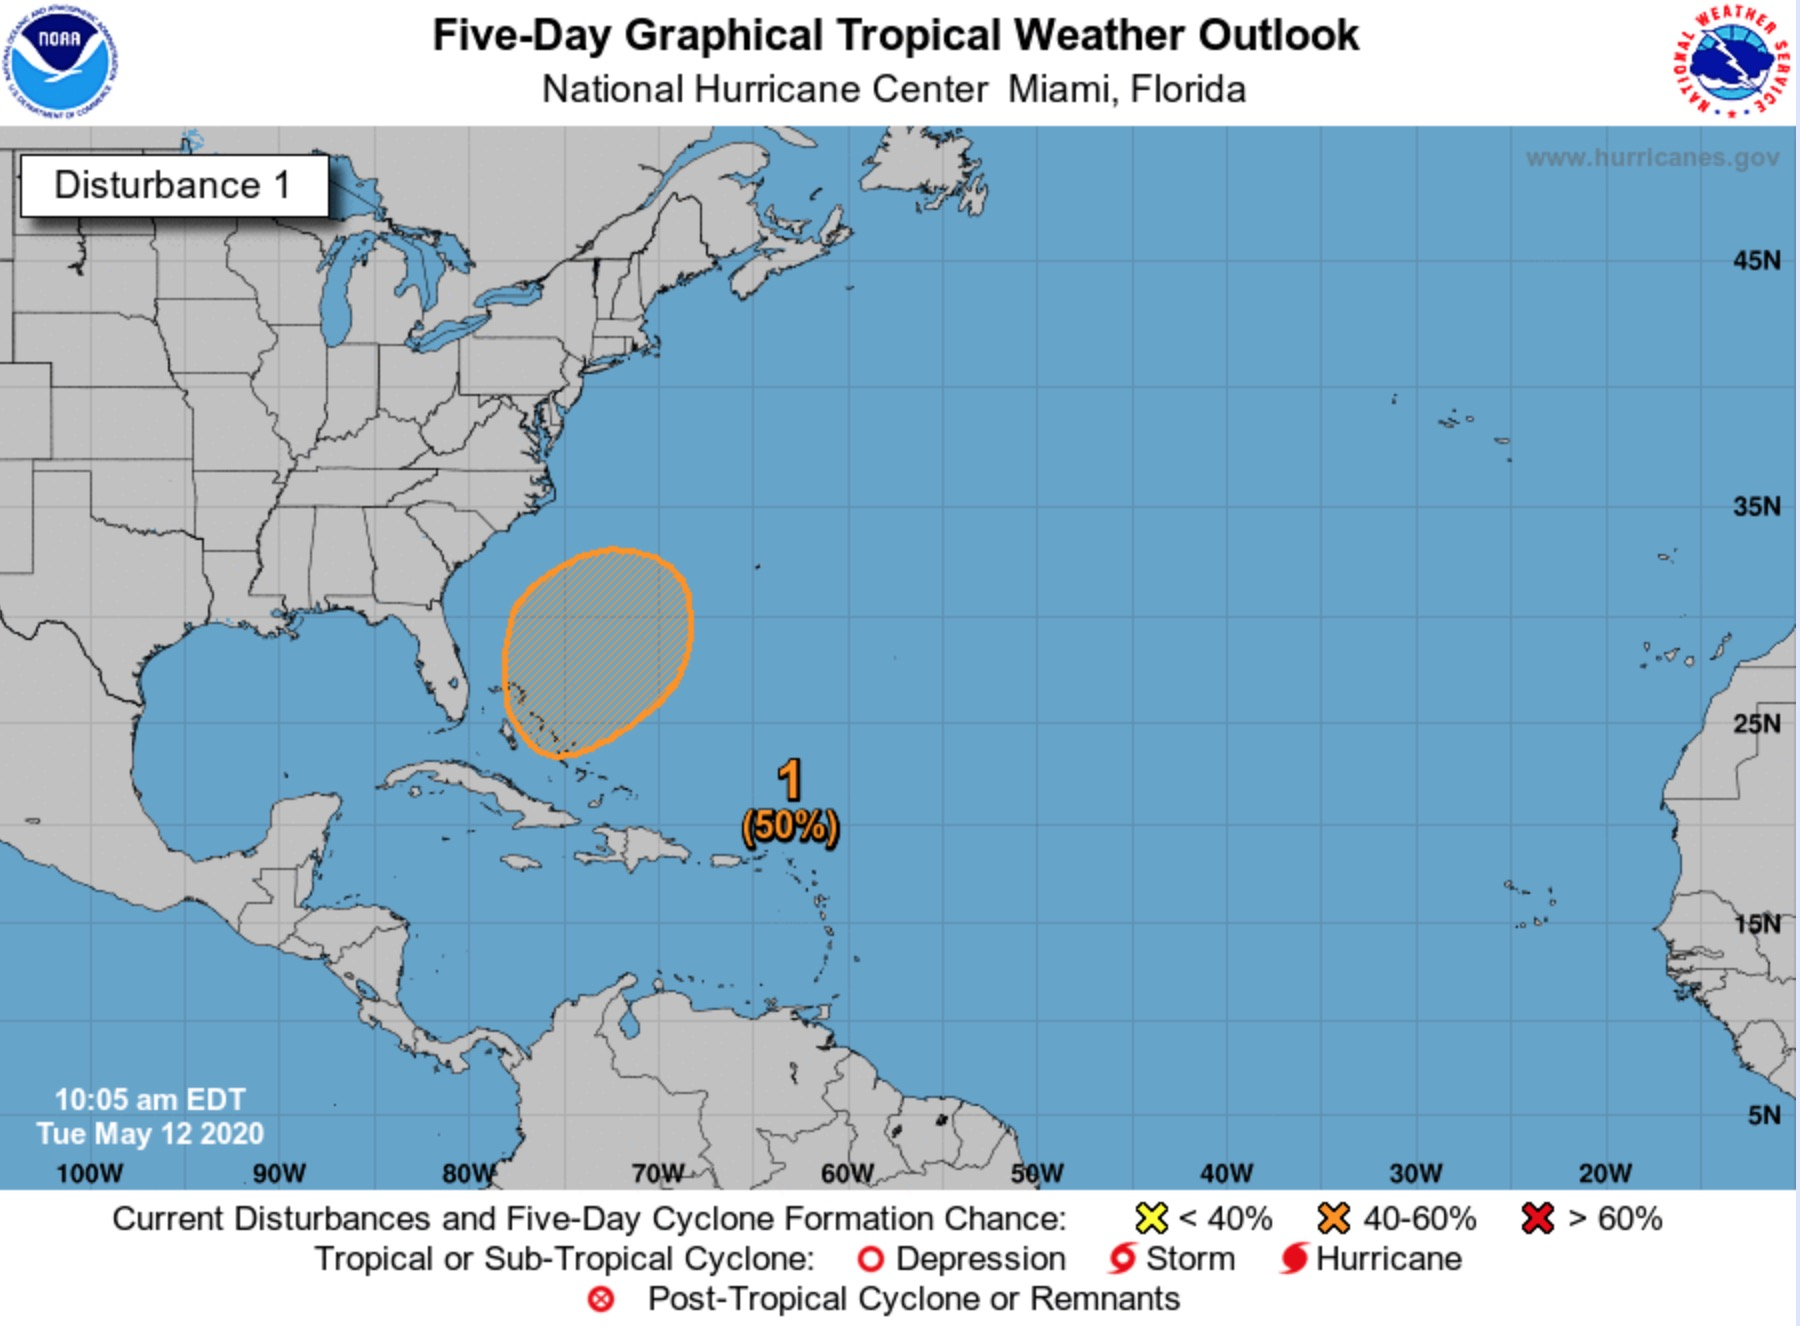 National Hurricane Center Finds First Disturbance Of 2020 Connecticut Post